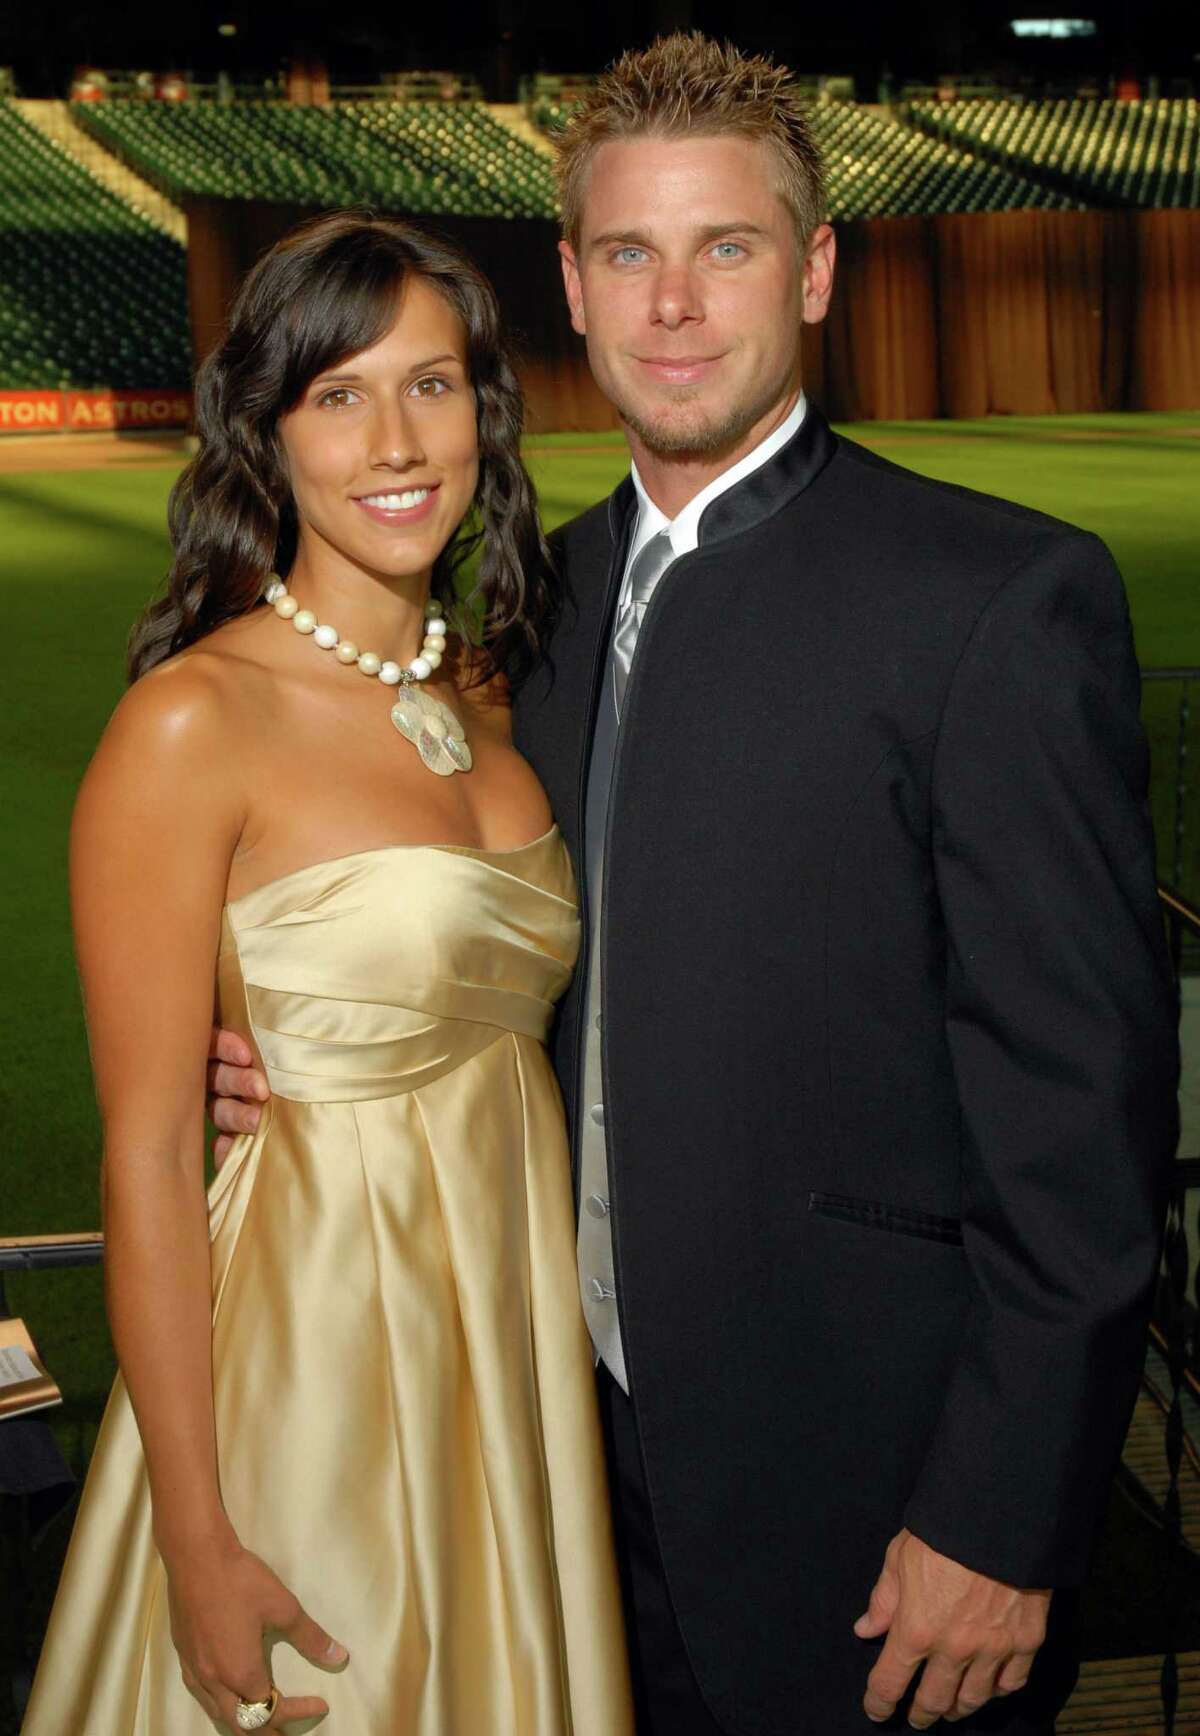 Dana Kohler and Brandon Backe at the Astros Wives Gala at Minute Maid Park Thursday July 31,2008. (Dave Rossman/For the Chronicle)